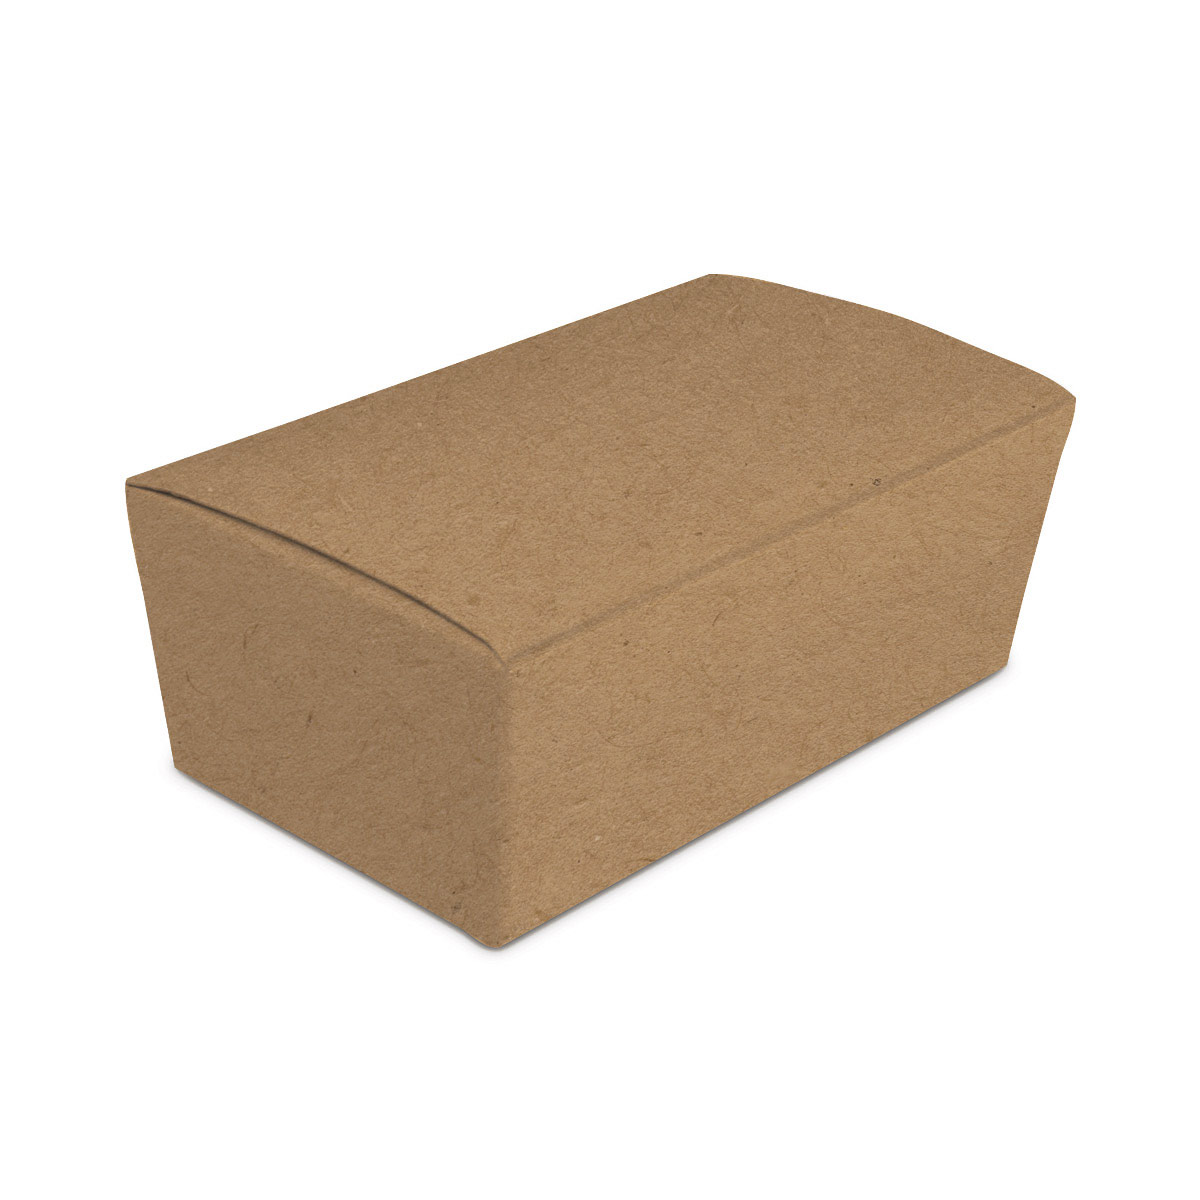 da9fccdcadc89 Folding Carton, Favor Box, Tapered 2-Piece, Kraft, QTY/CASE-50